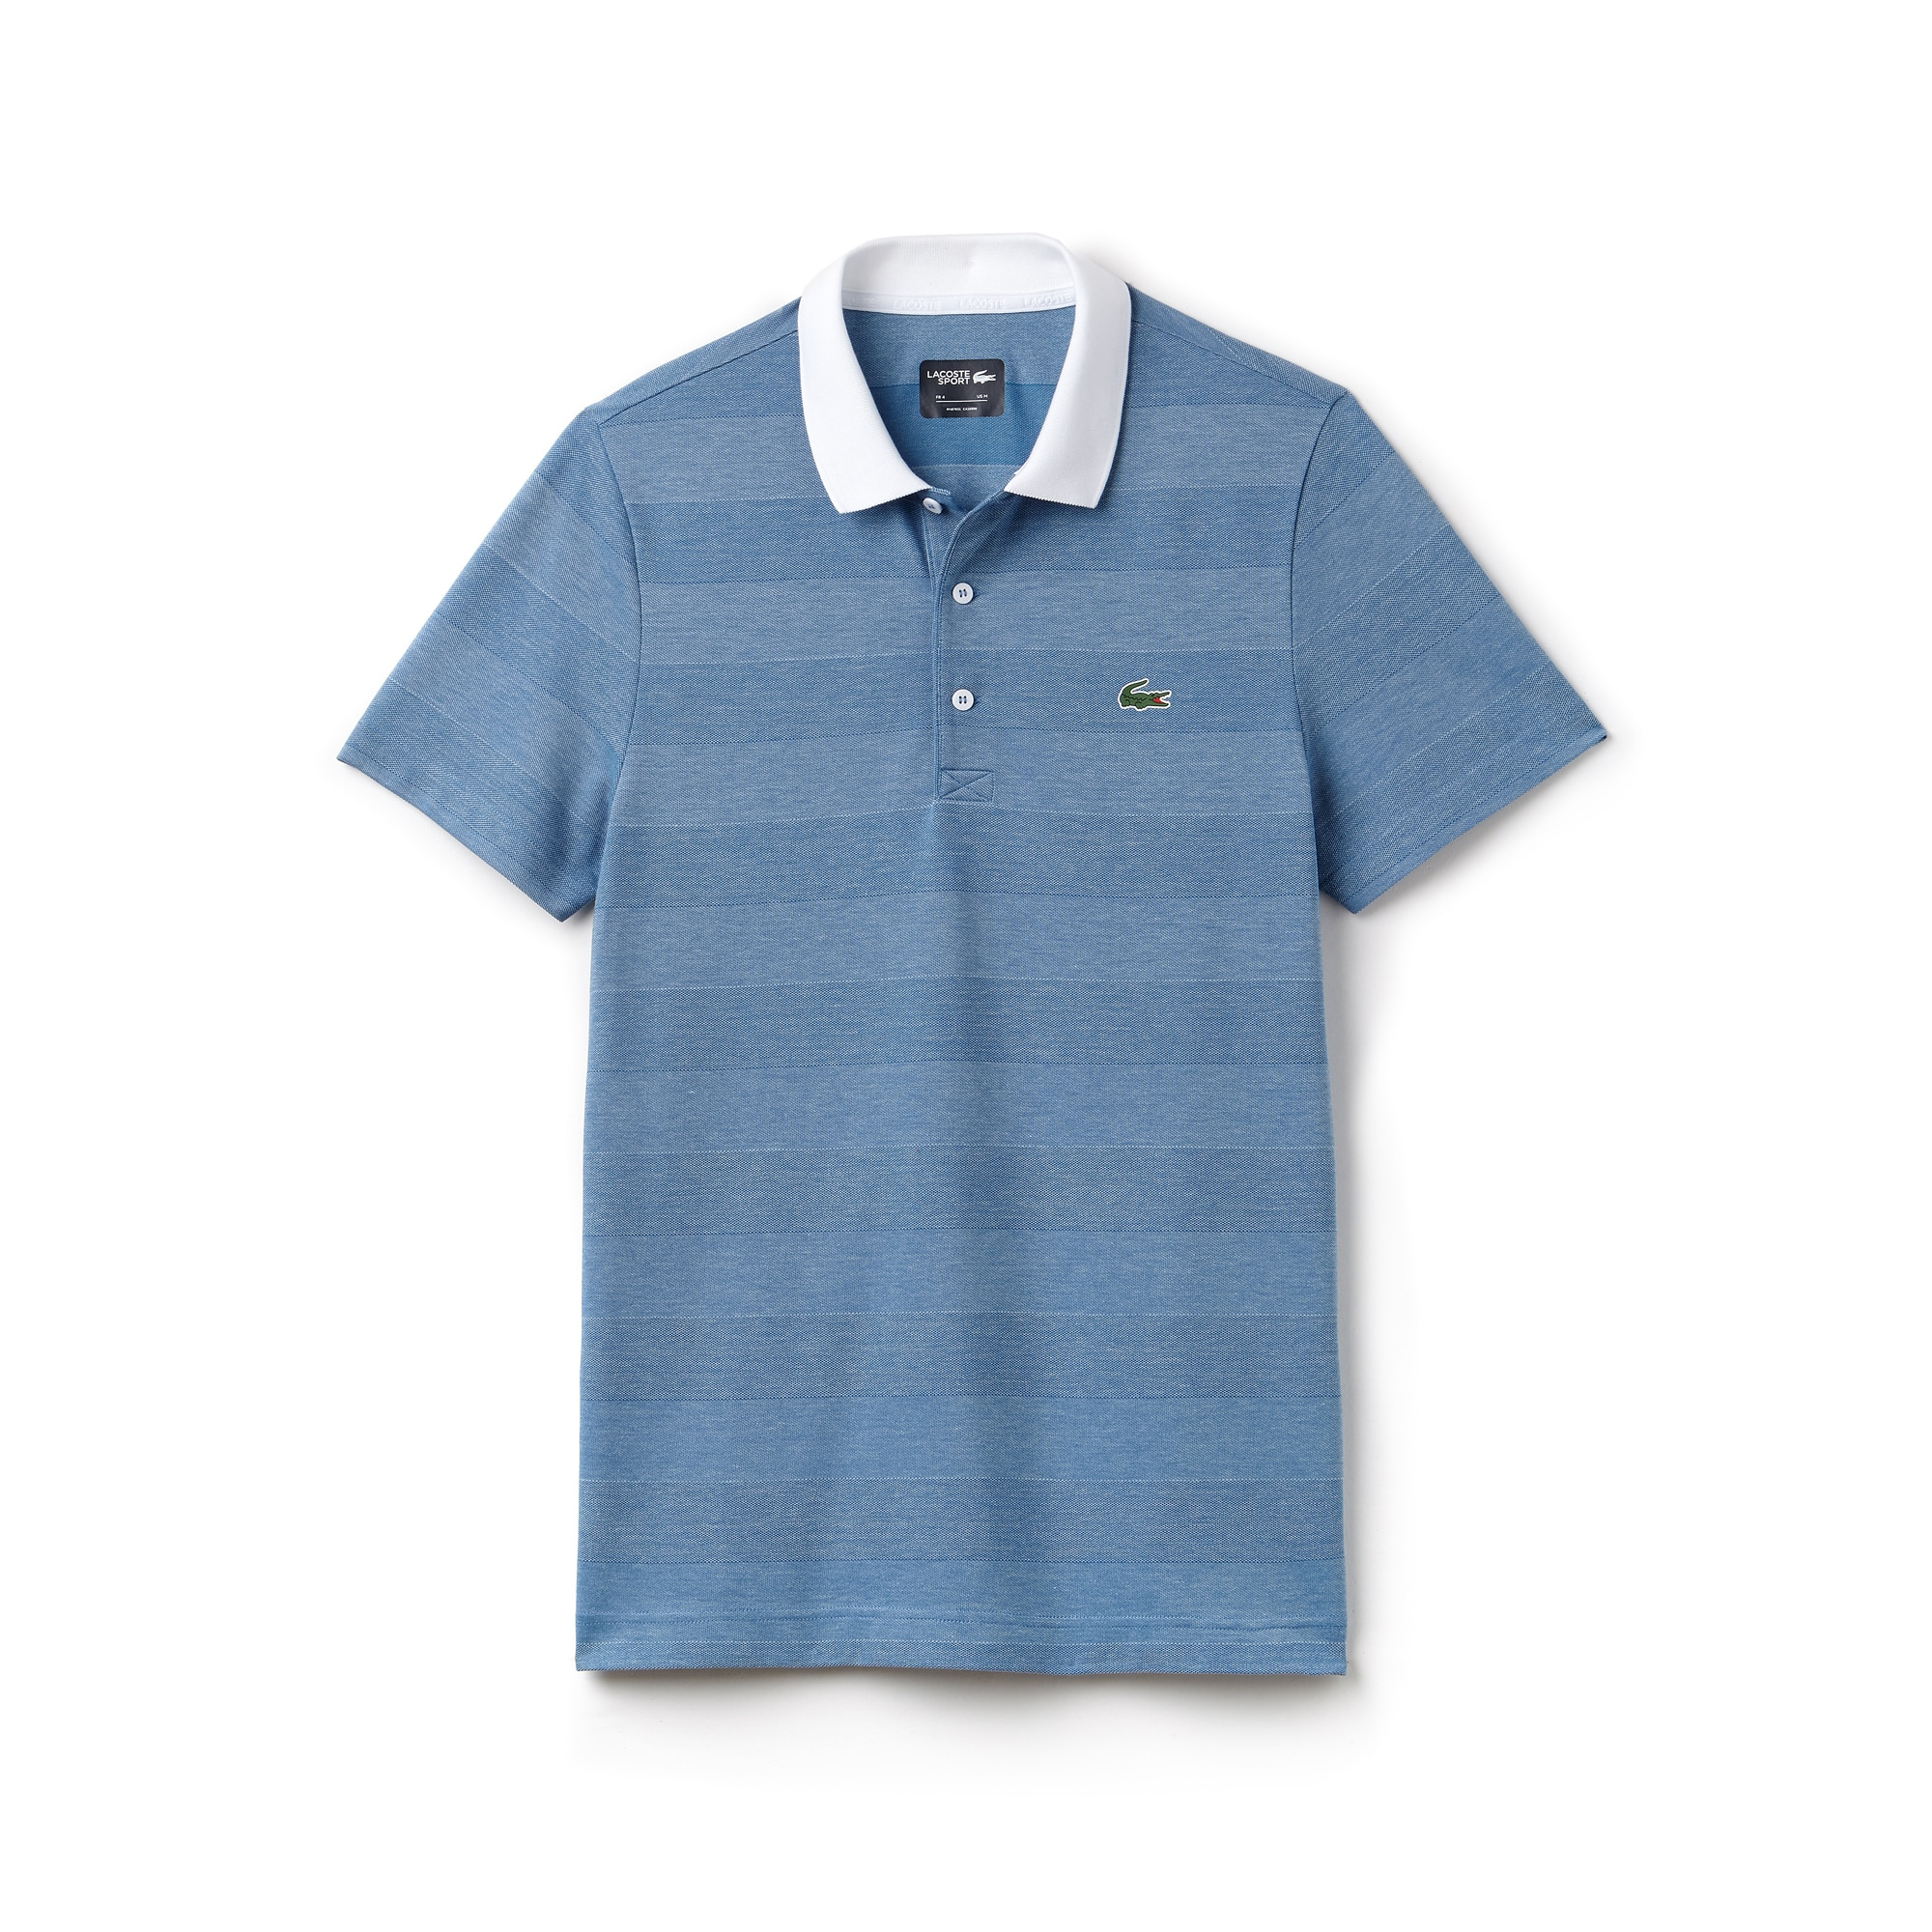 Men's Lacoste SPORT Technical Jersey Golf Polo